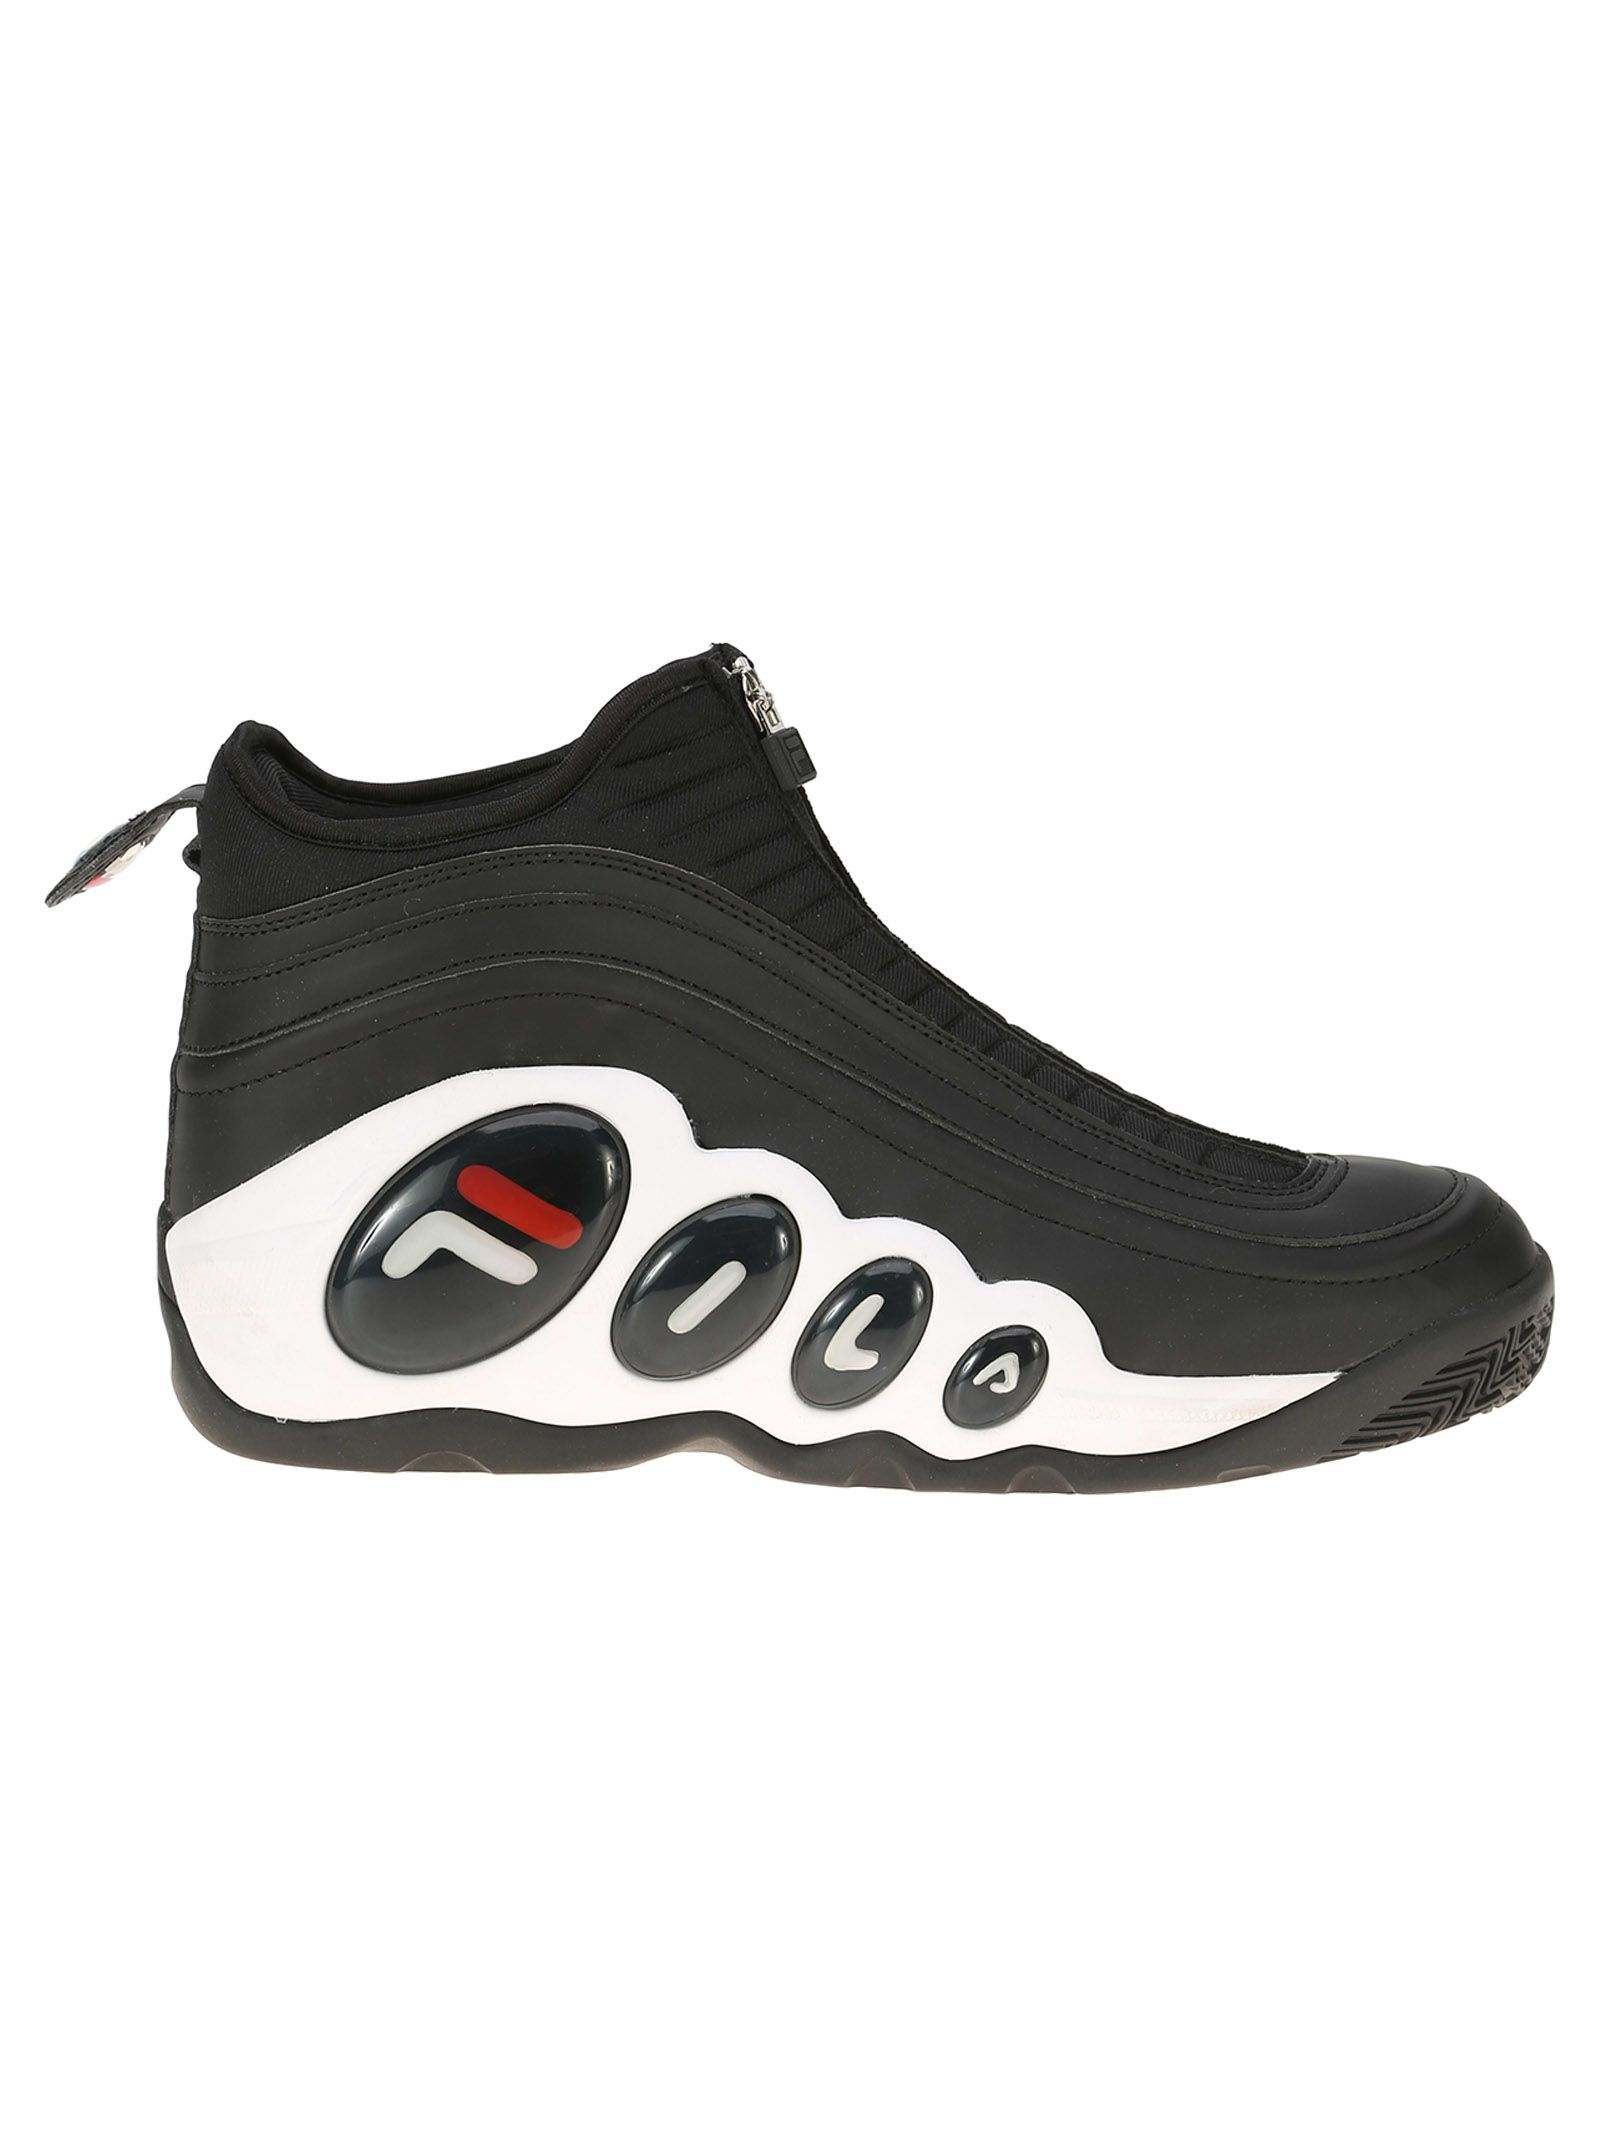 online store 7b1e9 8db56 FILA BUBBLE SNEAKERS.  fila  shoes